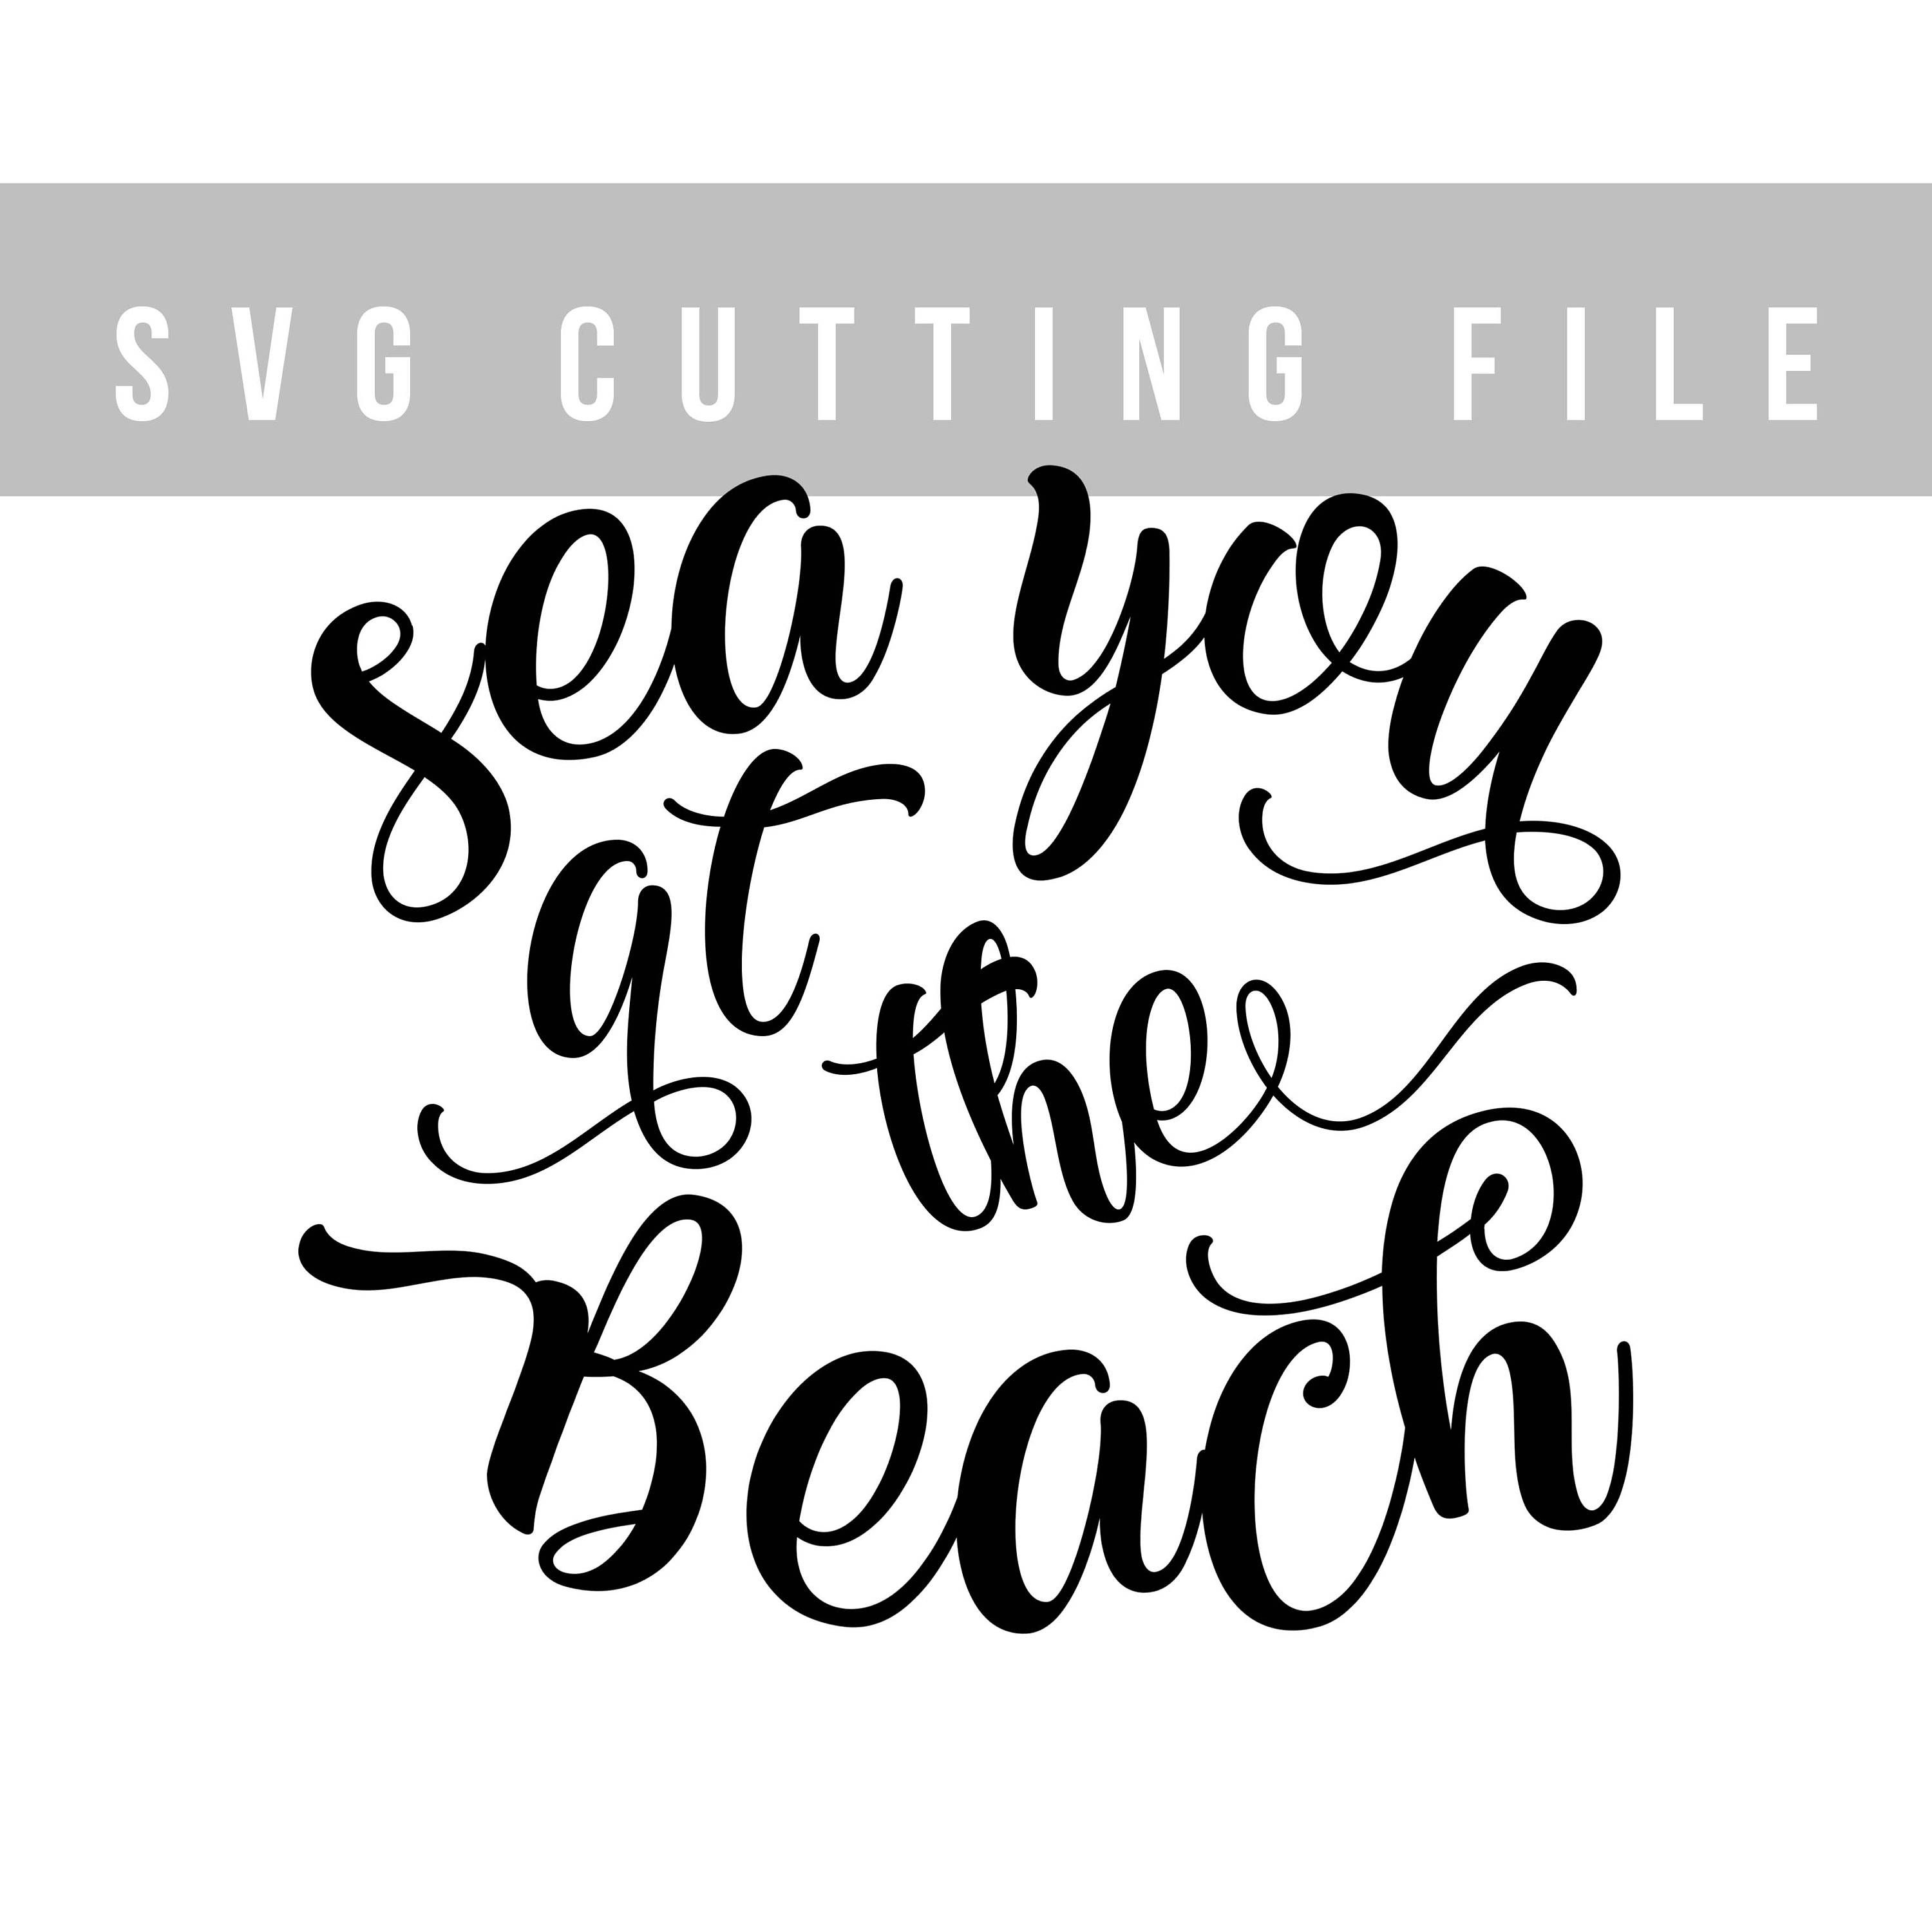 Sea you at the beach svg file Saying svg design Beach svg